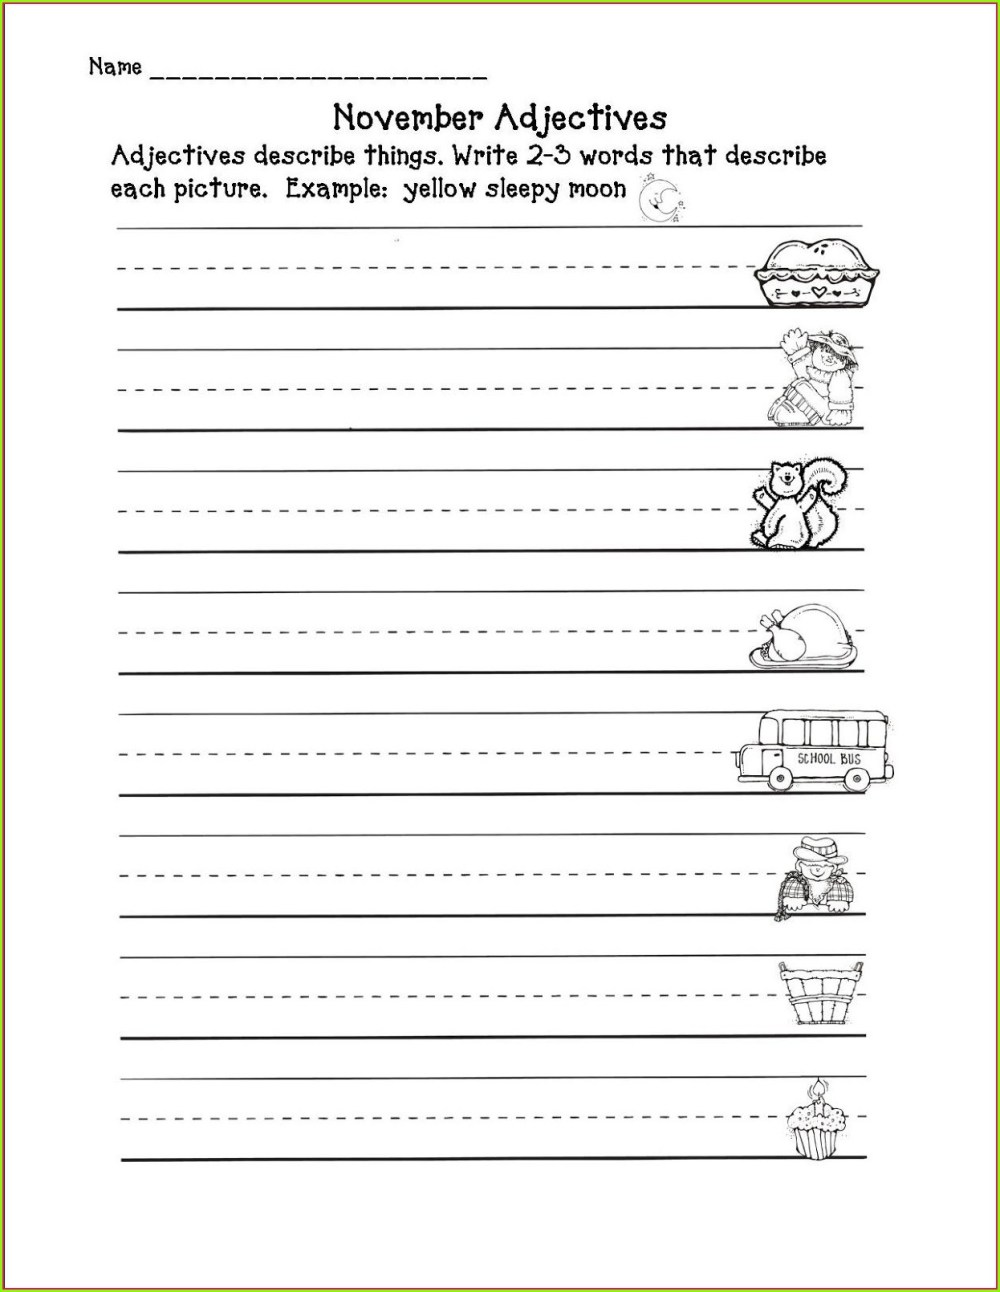 medium resolution of Descriptive Adjectives Worksheet 3rd Grade   Printable Worksheets and  Activities for Teachers